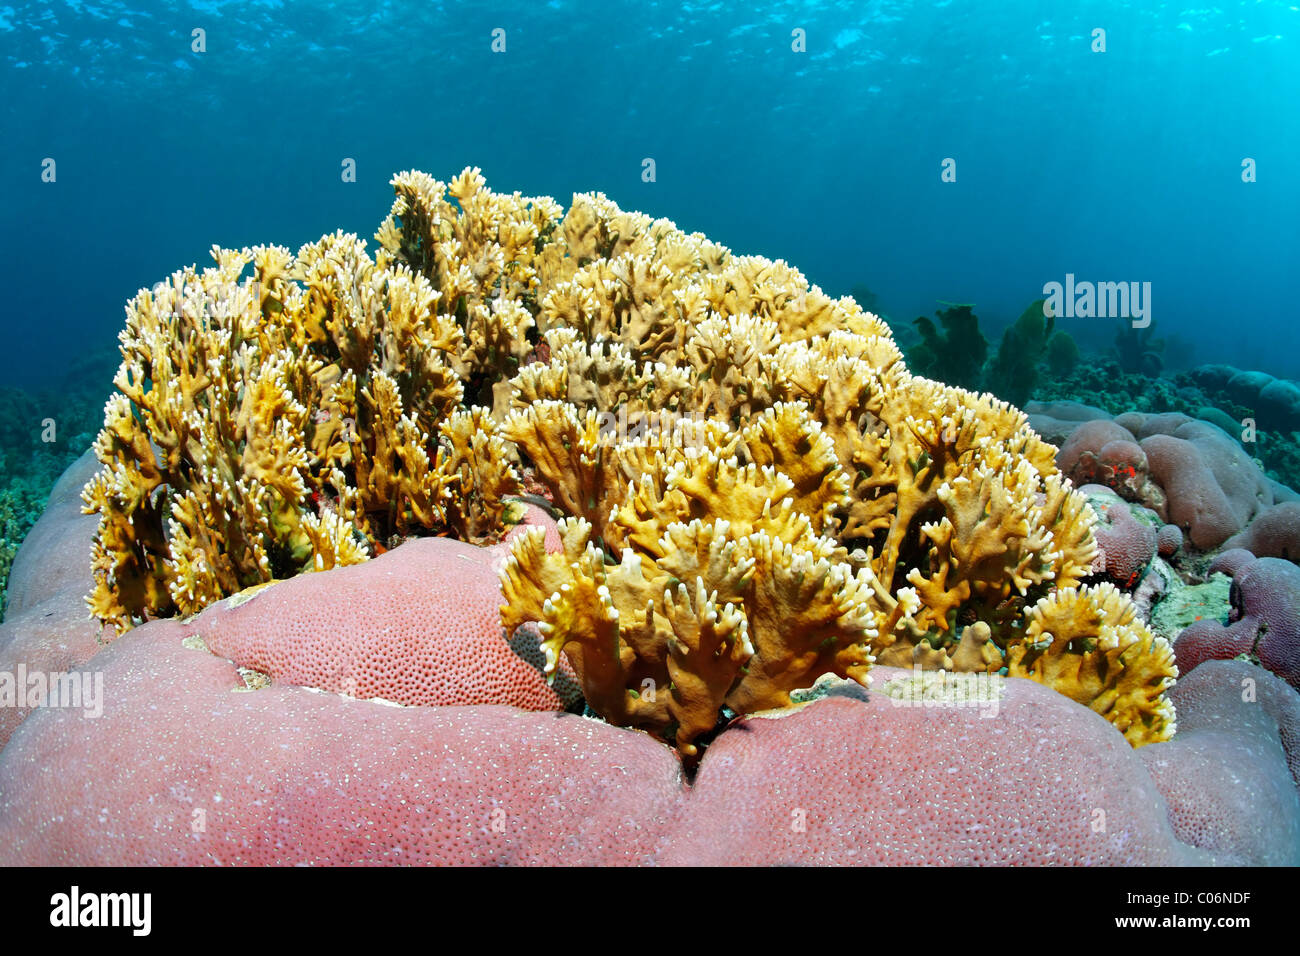 Branching fire coral (Millepora alcicornis), yellow, nettling, unknown pink pillow coral, Little Tobago, Speyside - Stock Image